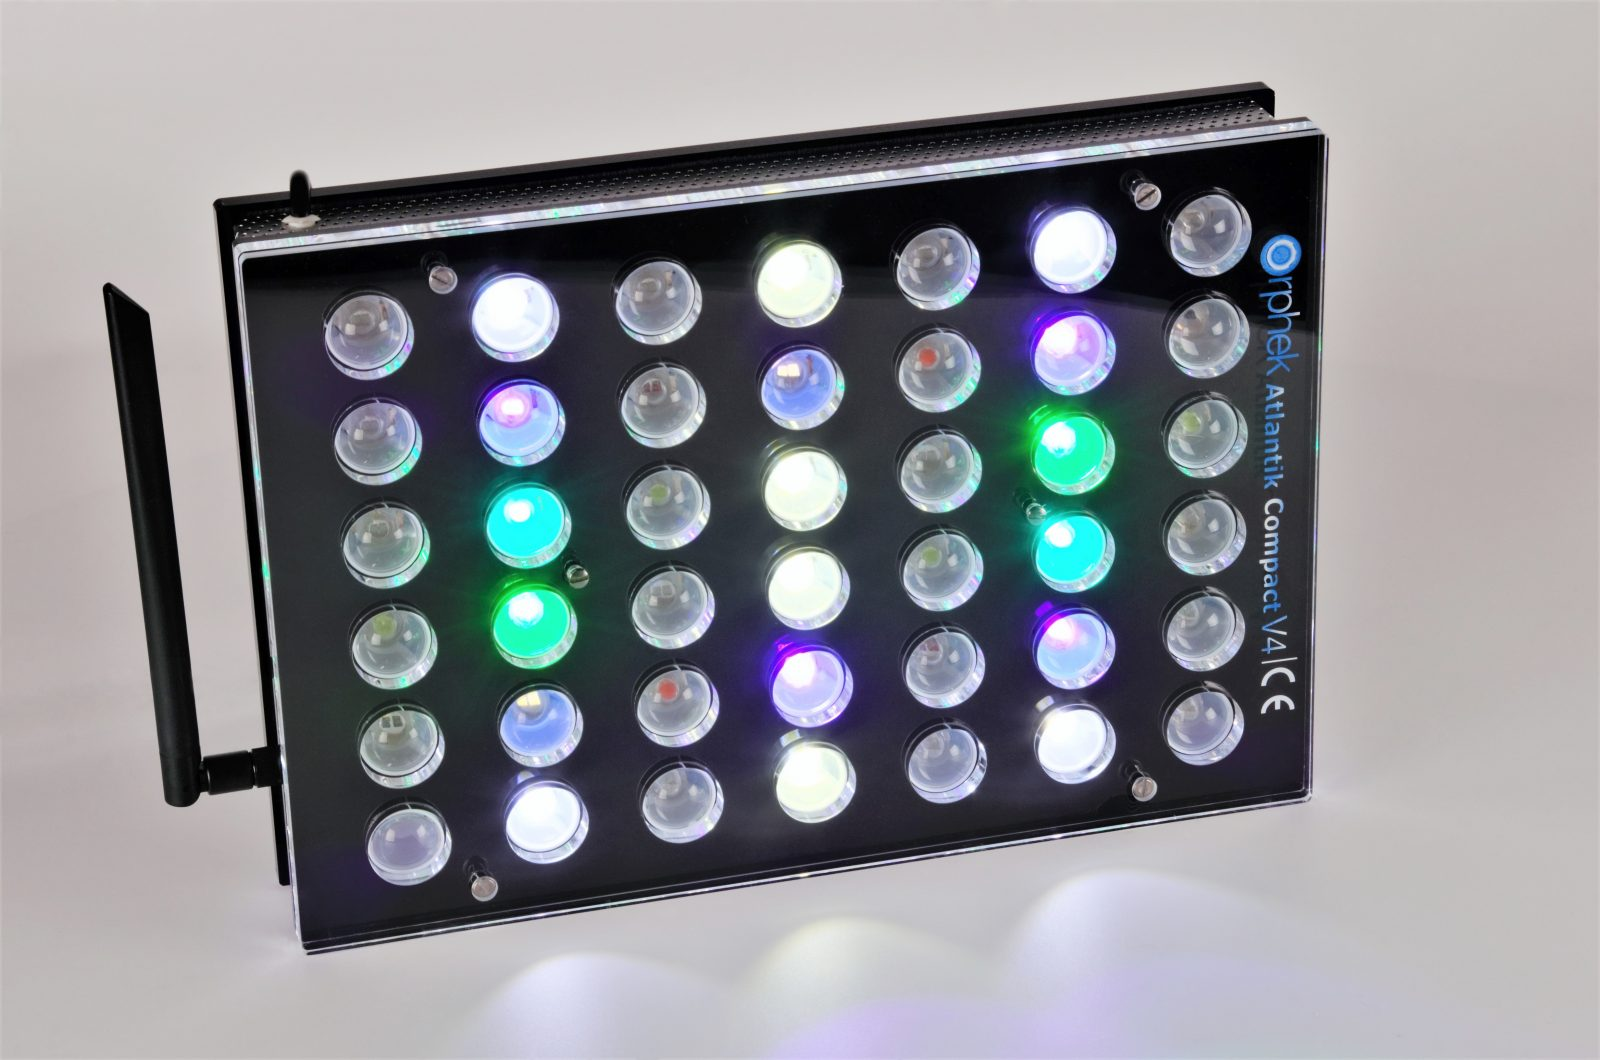 Orphek-Aquarium-LED-Lighting-Atlantik -Compact-V4-licht -on-kanaal 1 + 3